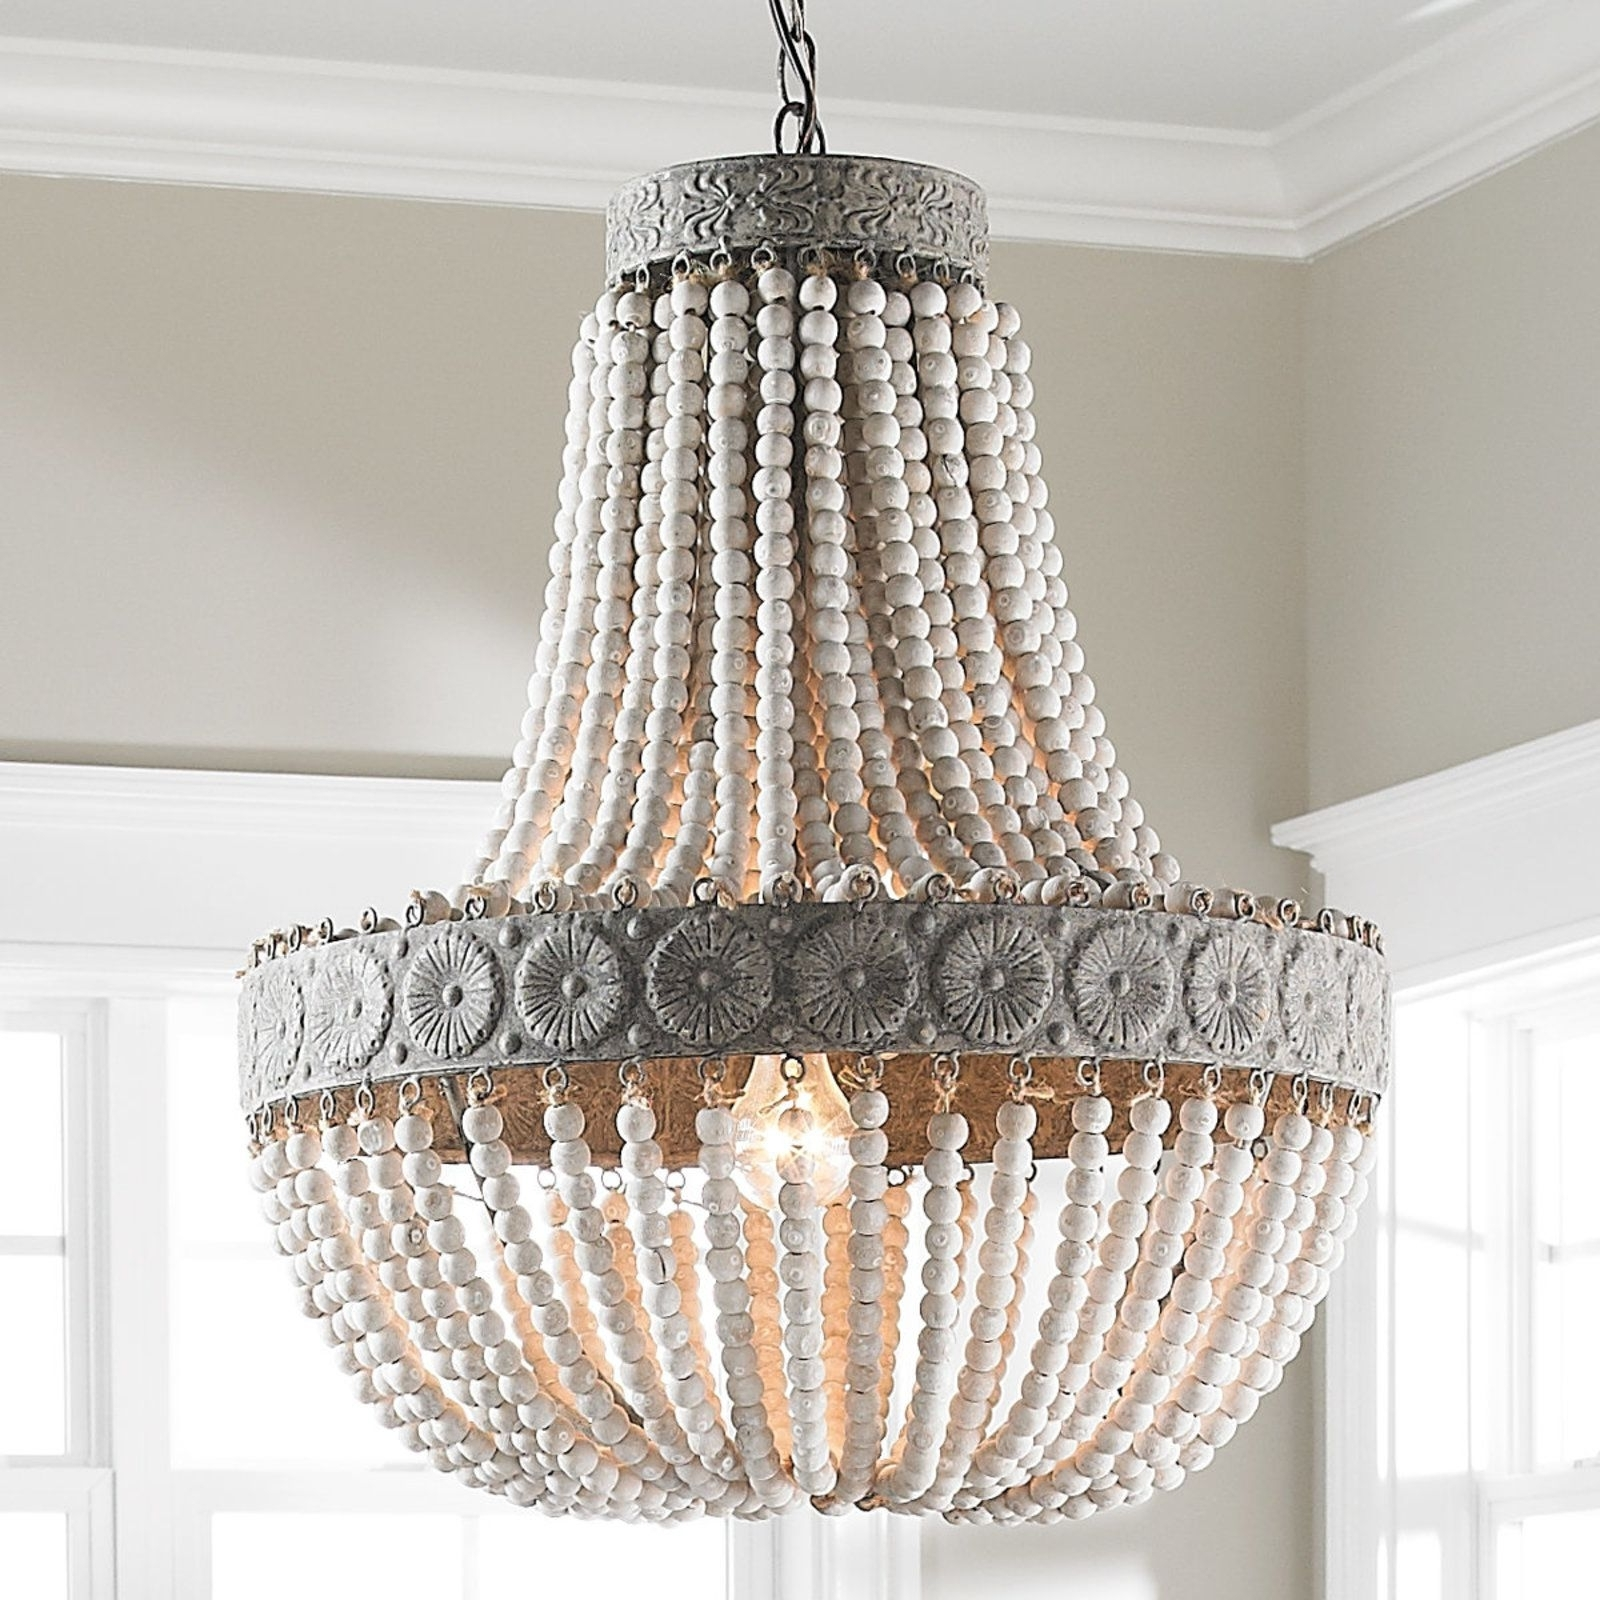 Wood Bead Chandelier, Aged Wood And